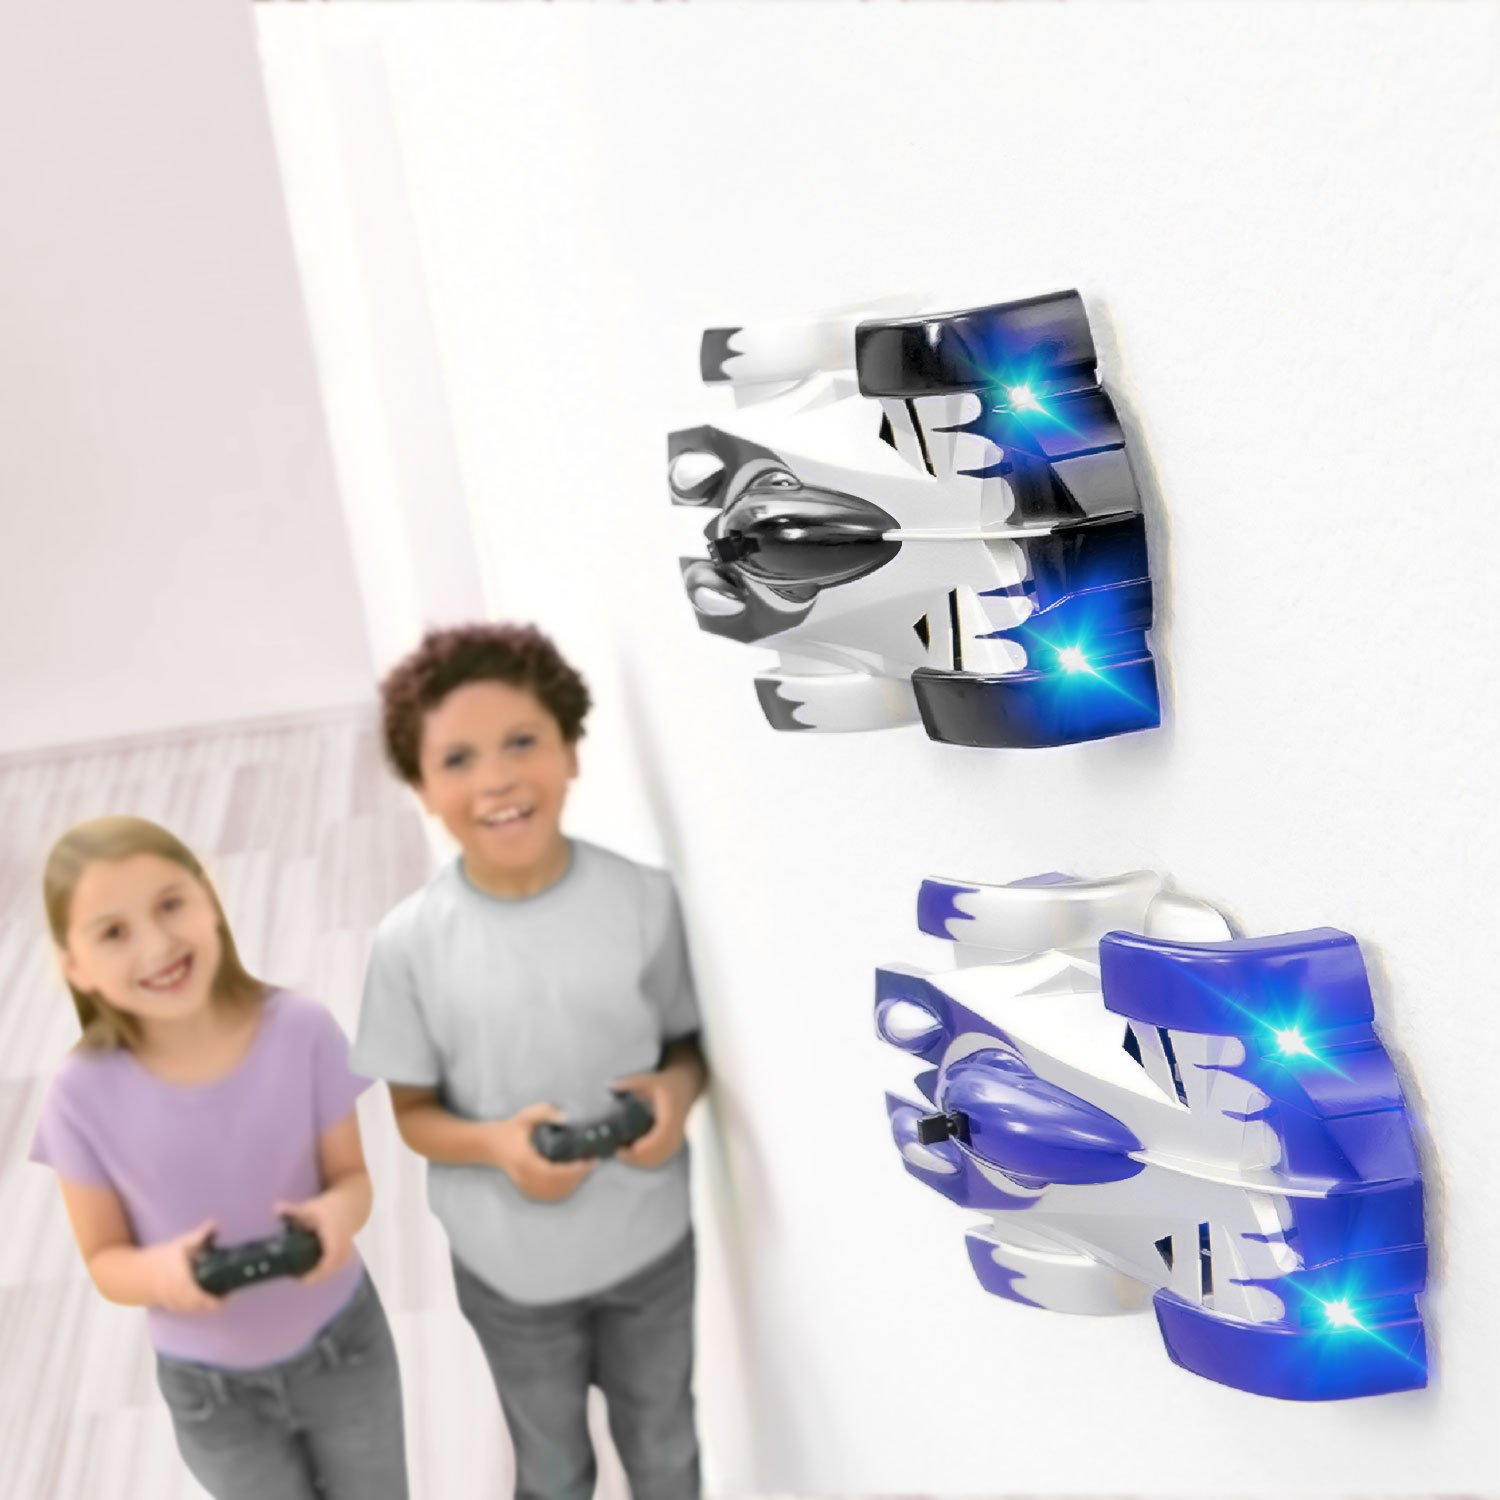 SGILE Remote Control Car Toy, Wall Climbing RC Car - Dual Mode 360° Rotating LED Head Stunt Car, Birthday Present Gift for Kids, Blue by SGILE (Image #6)